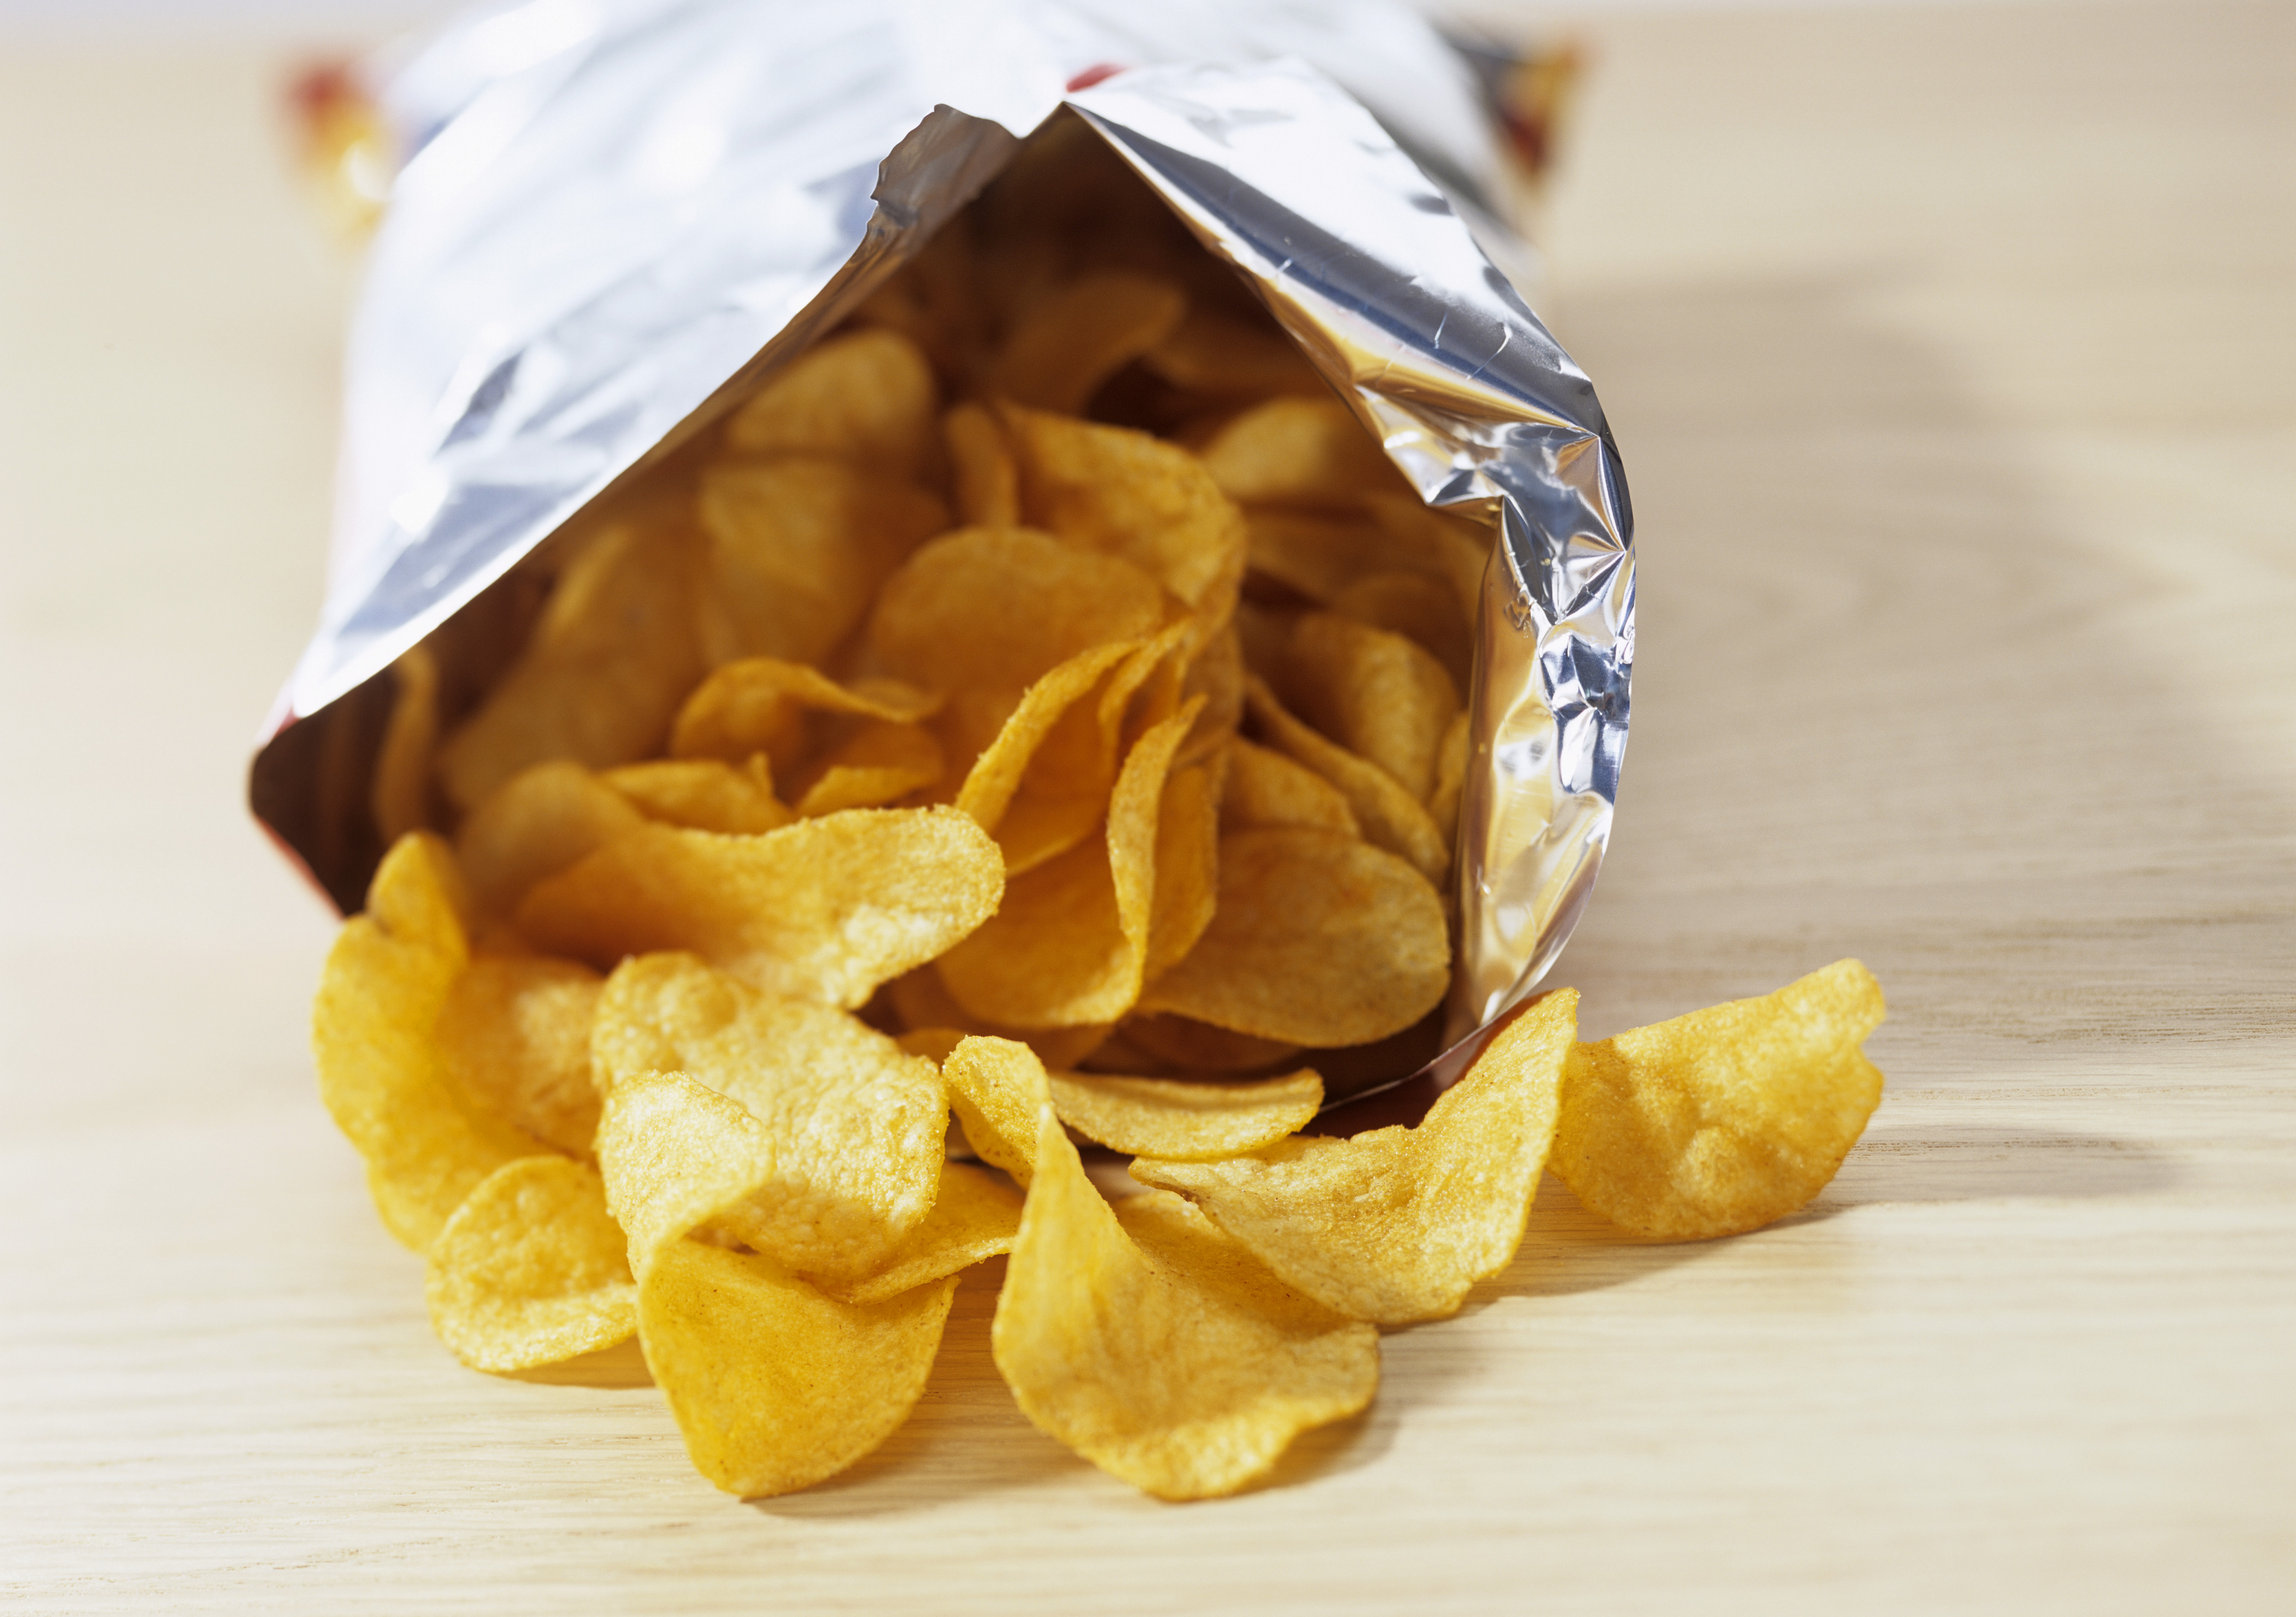 What foods cause nightmares? Chips